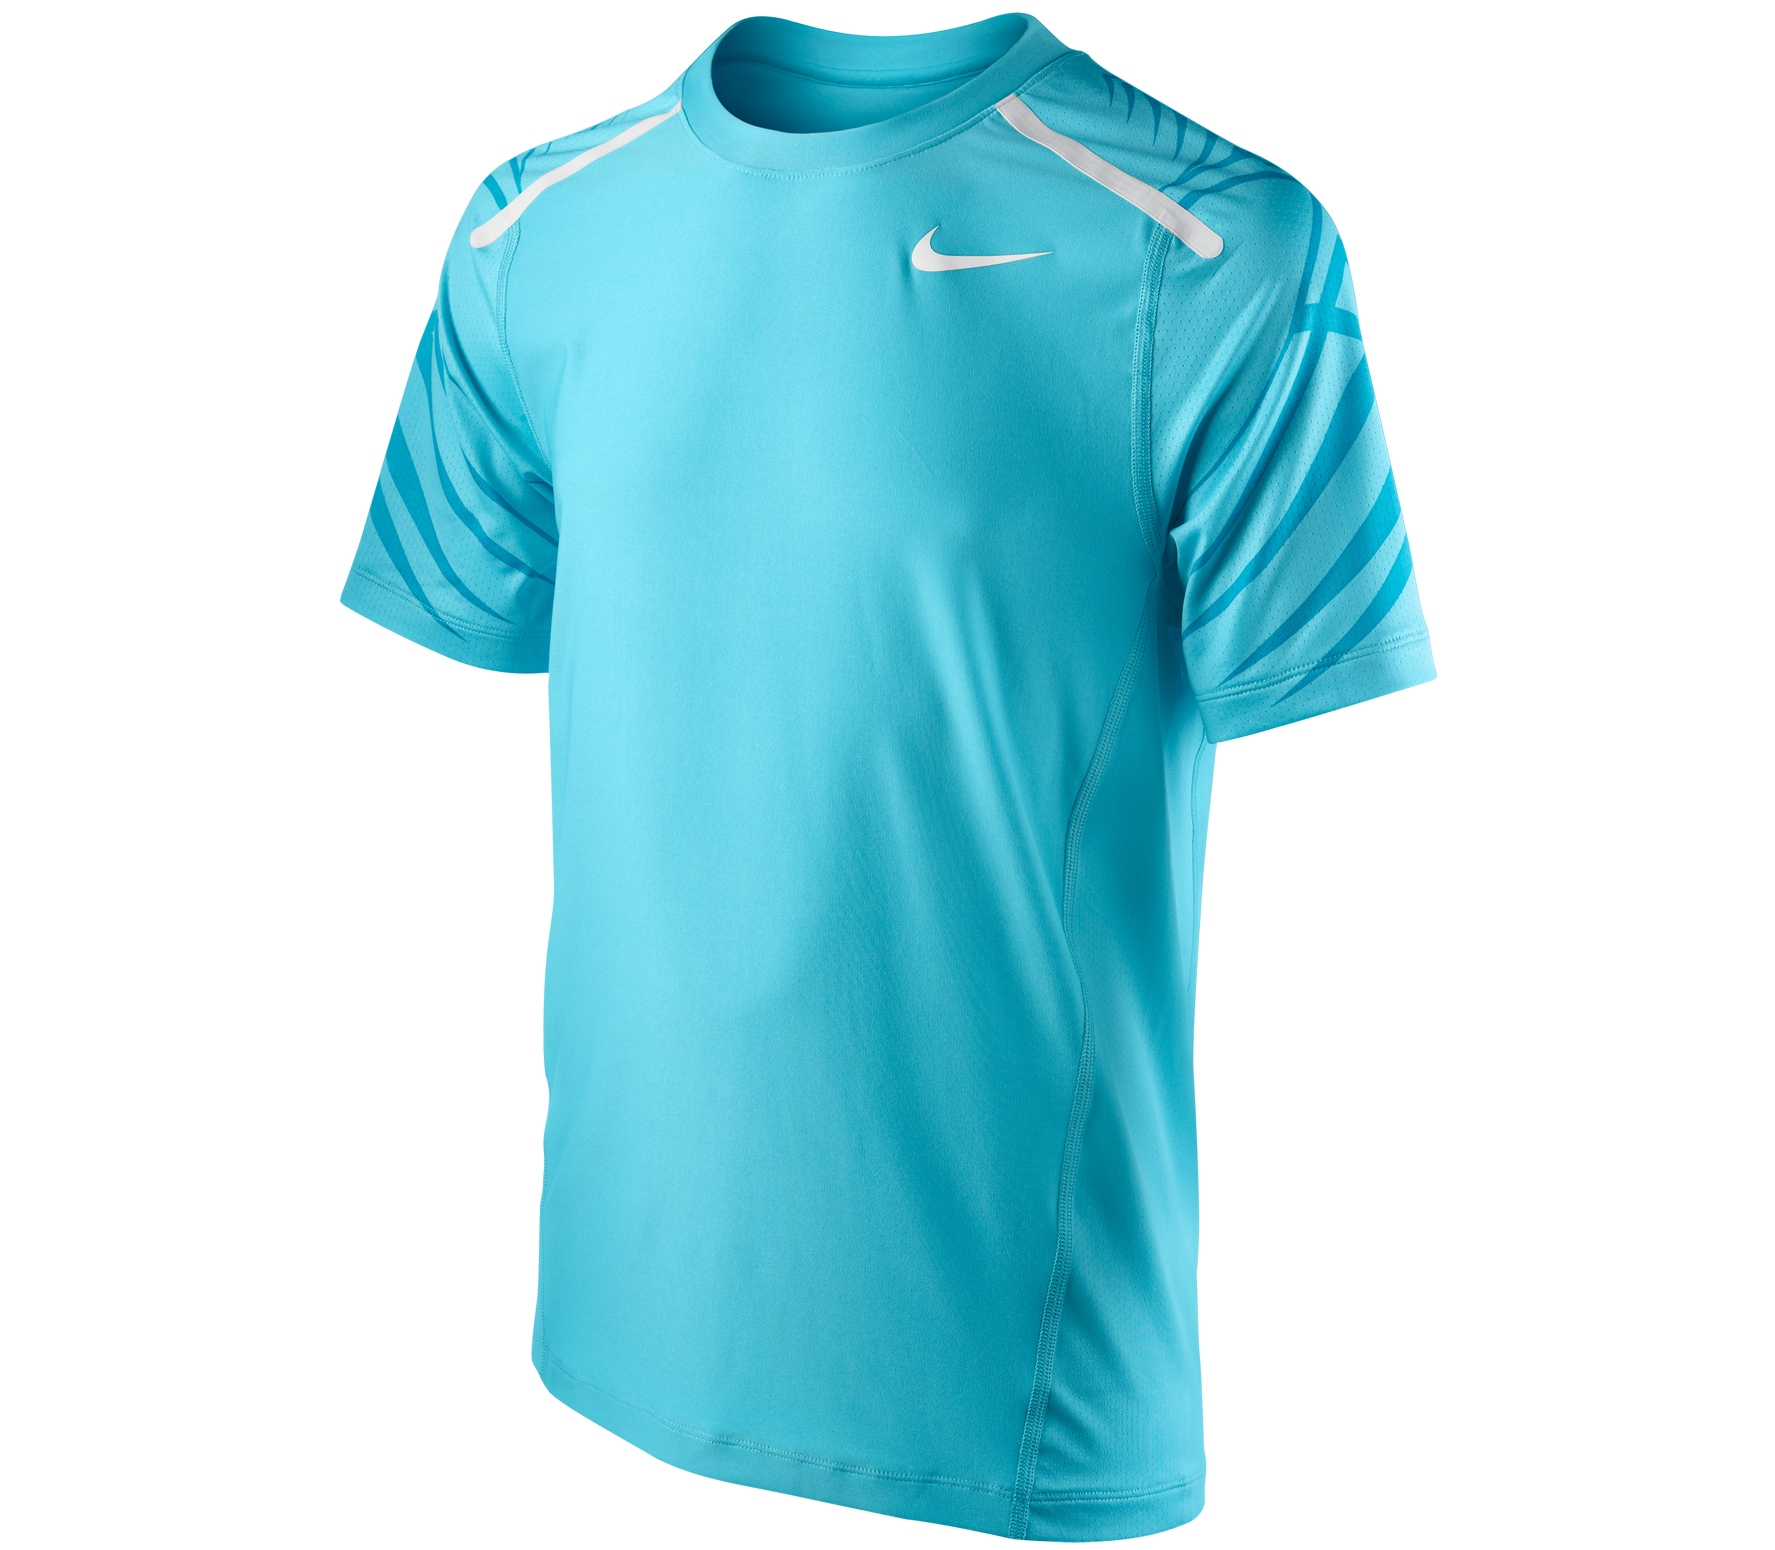 reliable index image nike tennis clothing